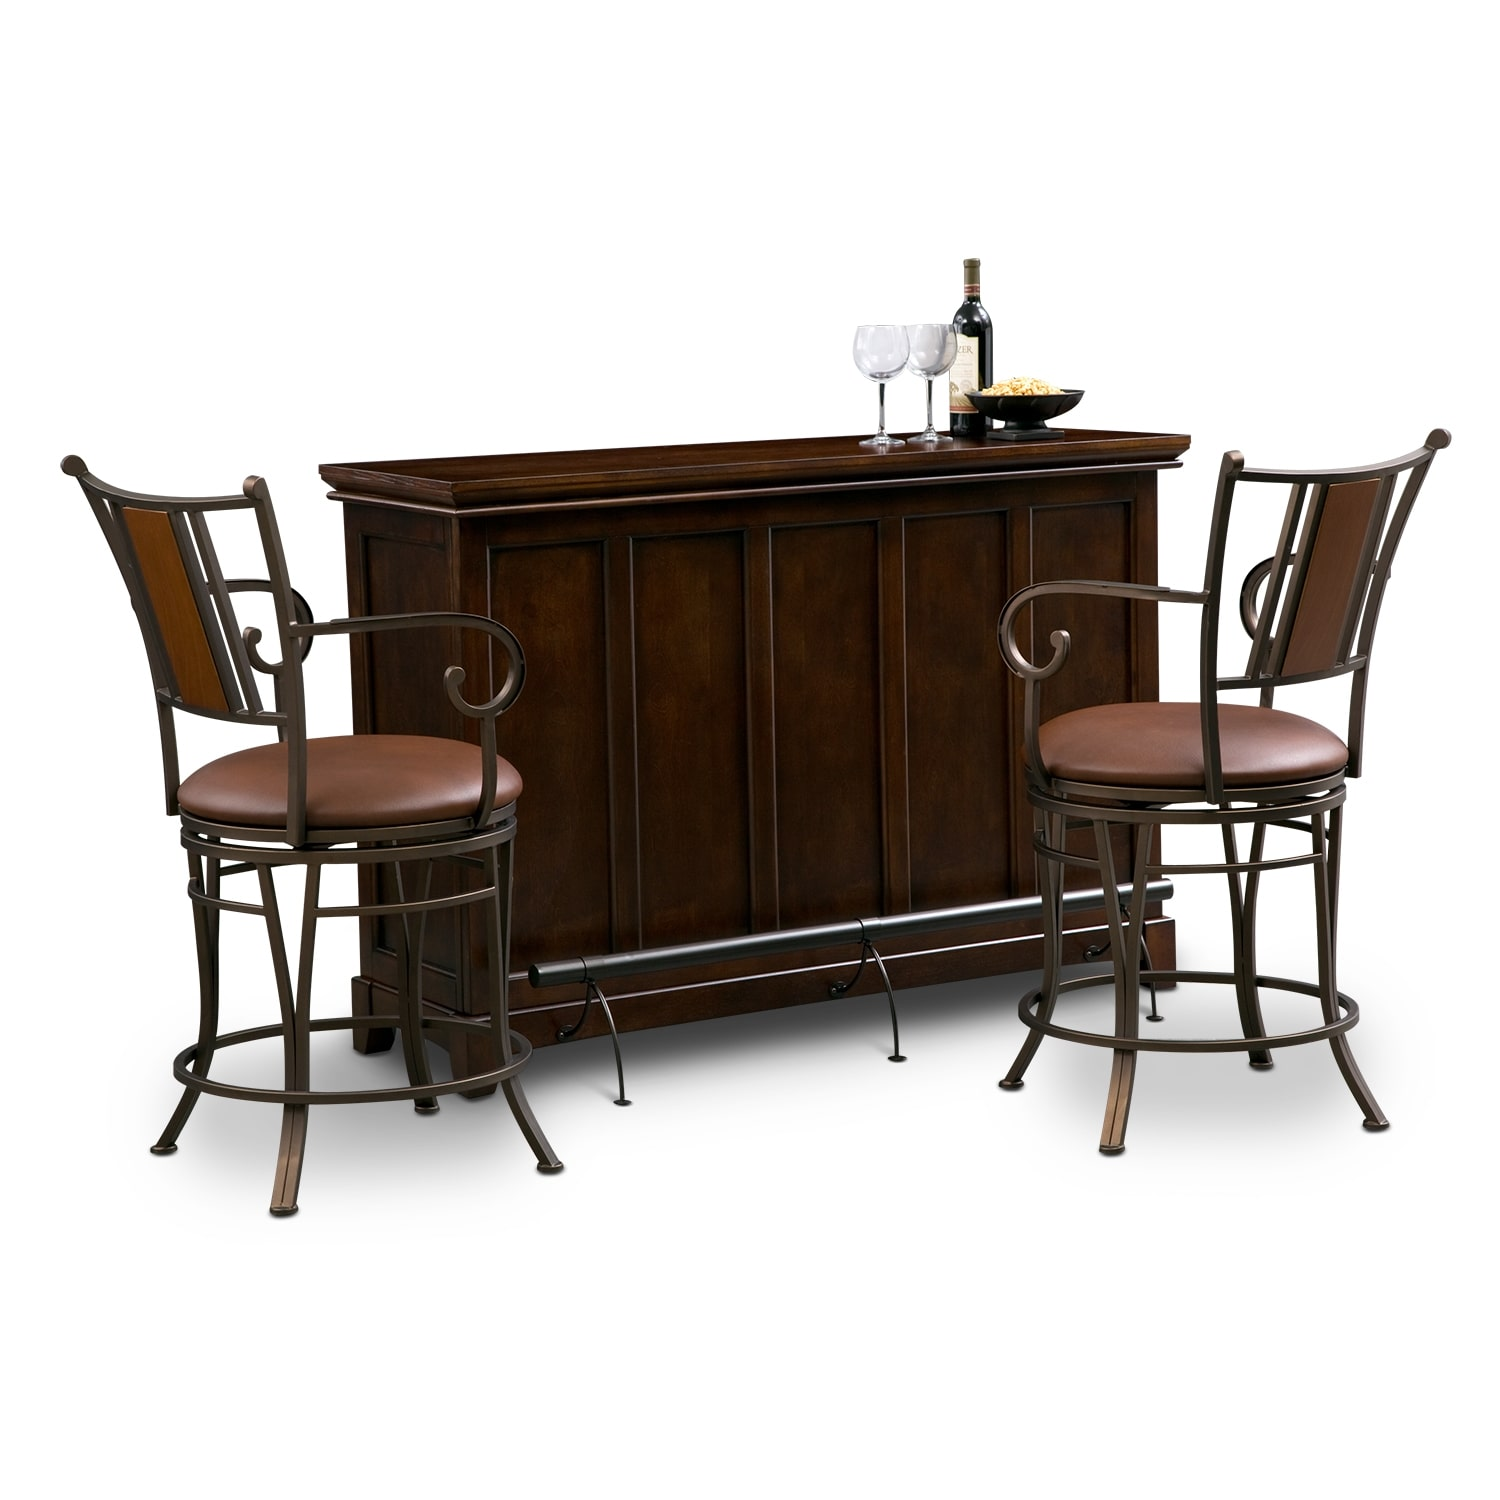 Accent and Occasional Furniture - Carlton Camden 3 Pc. Bar Set